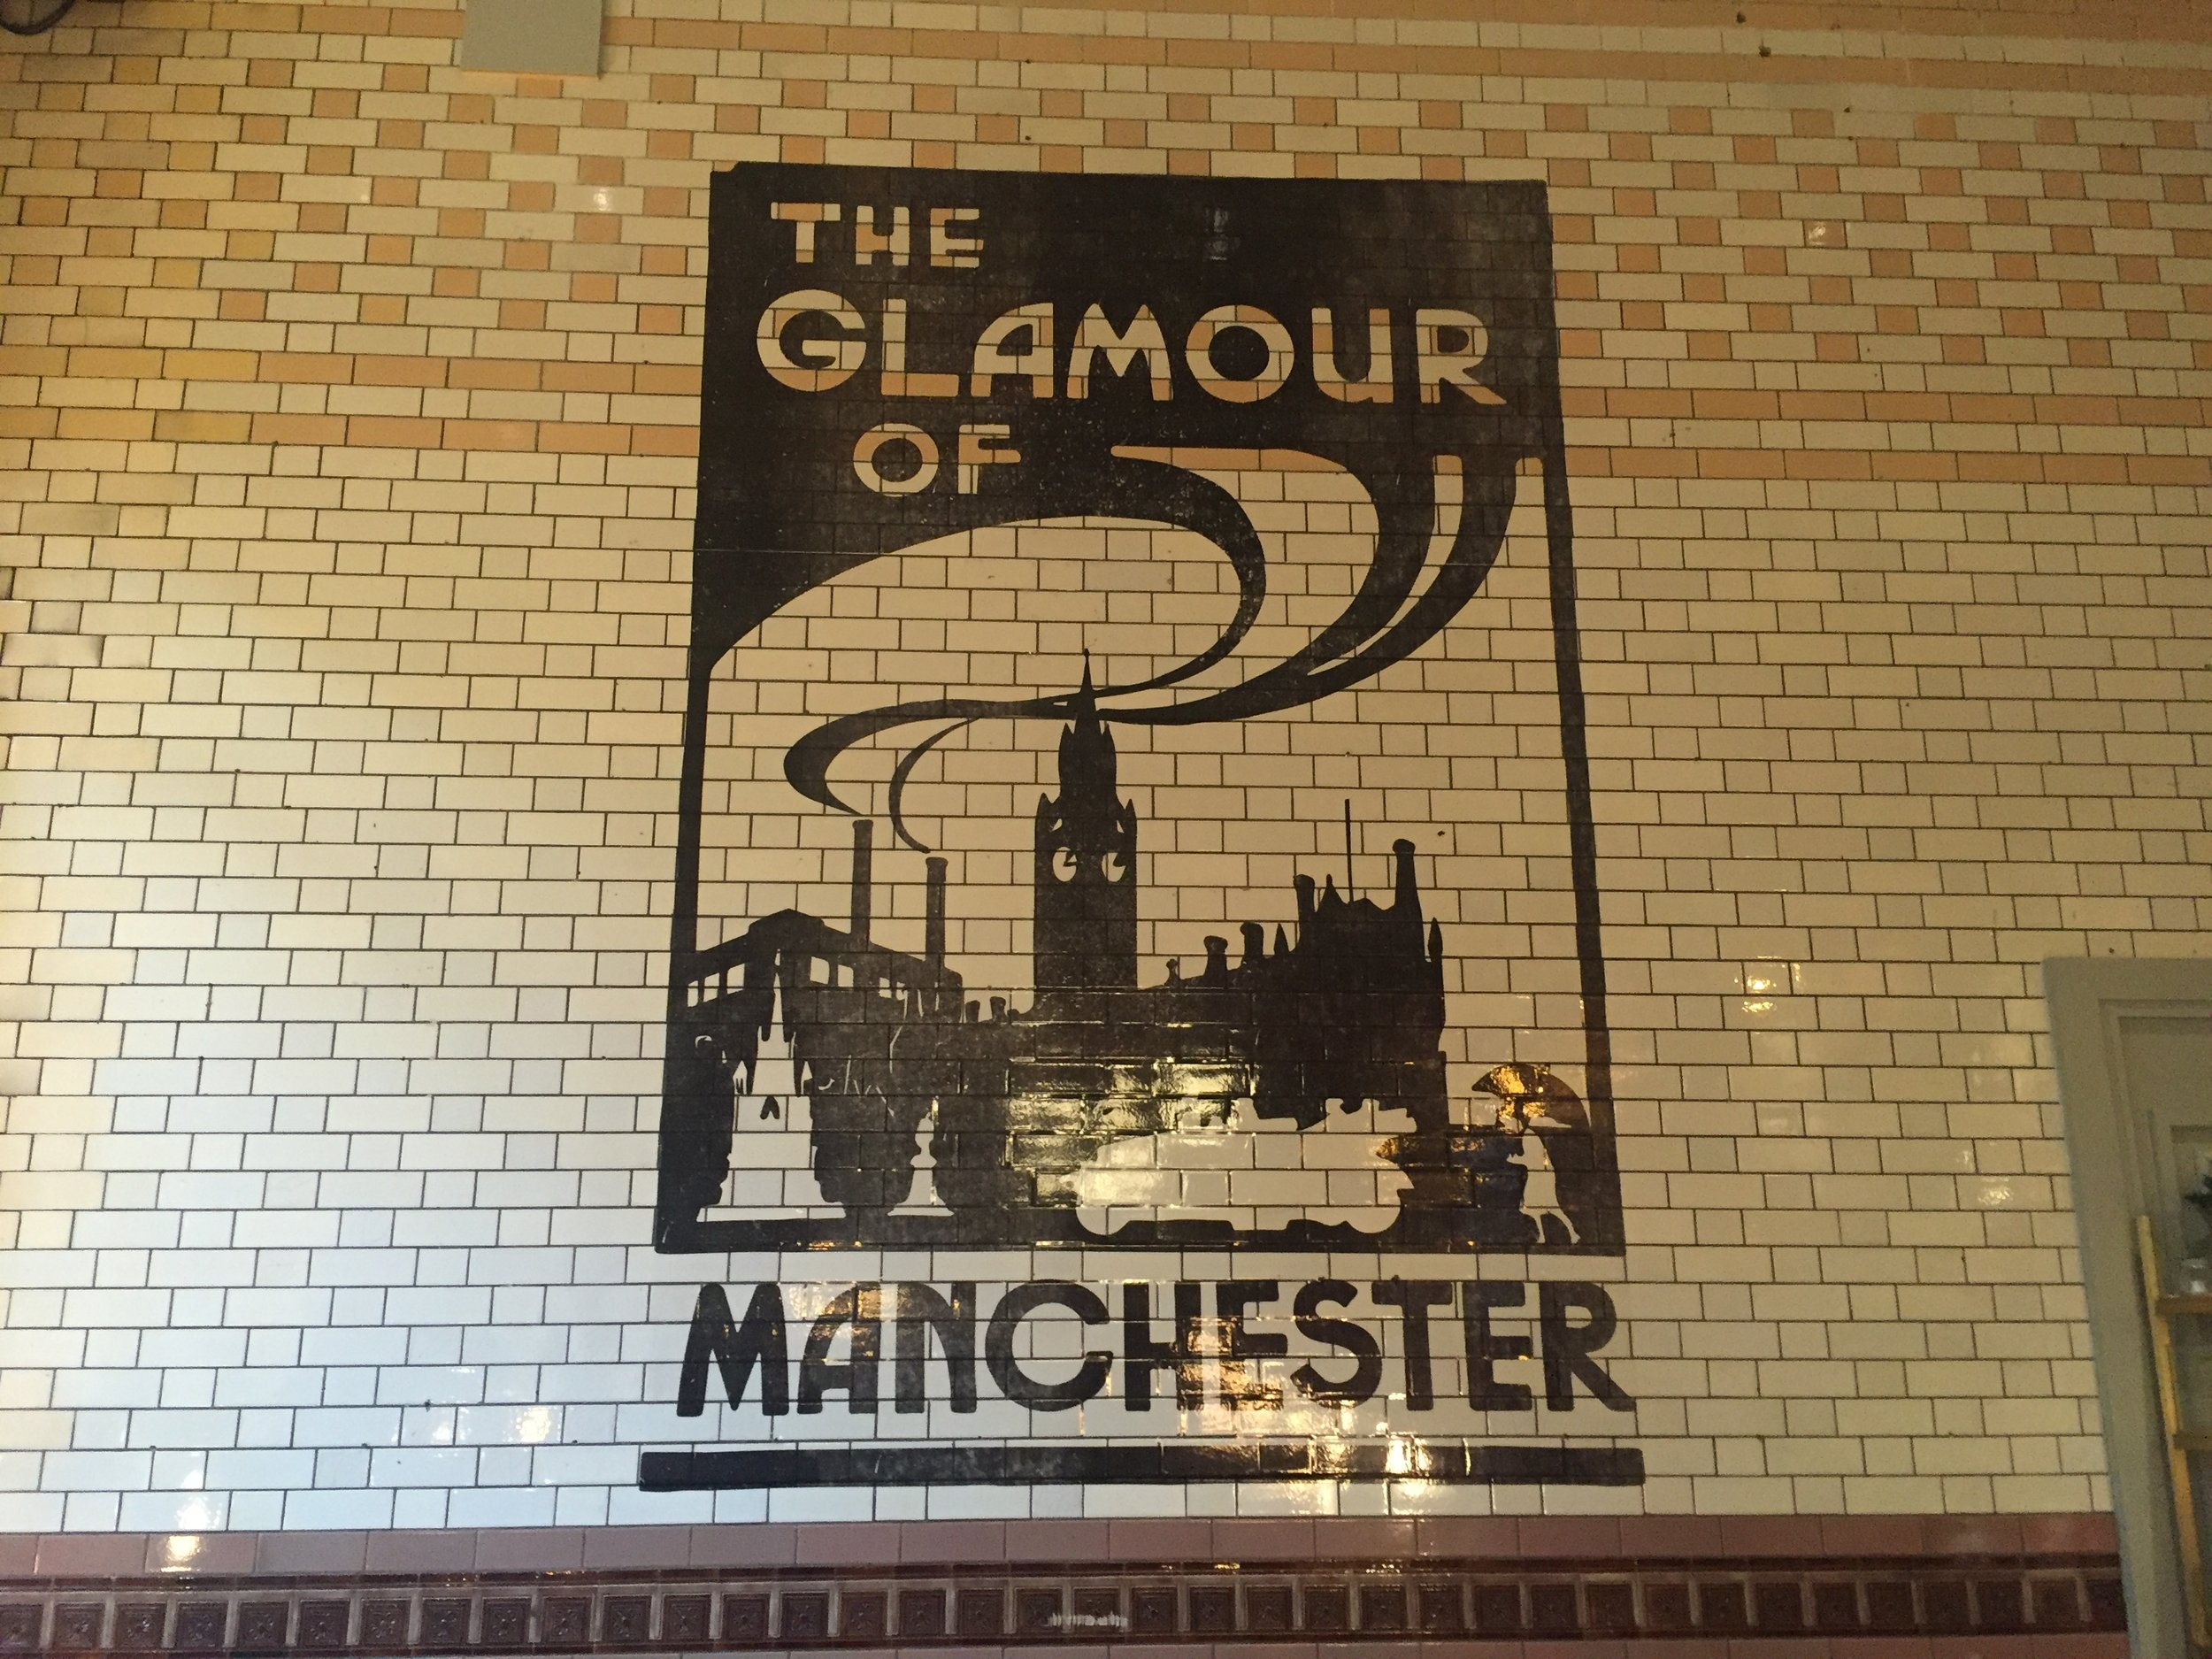 'The glamour of Manchester' mural at the Principal Hotel